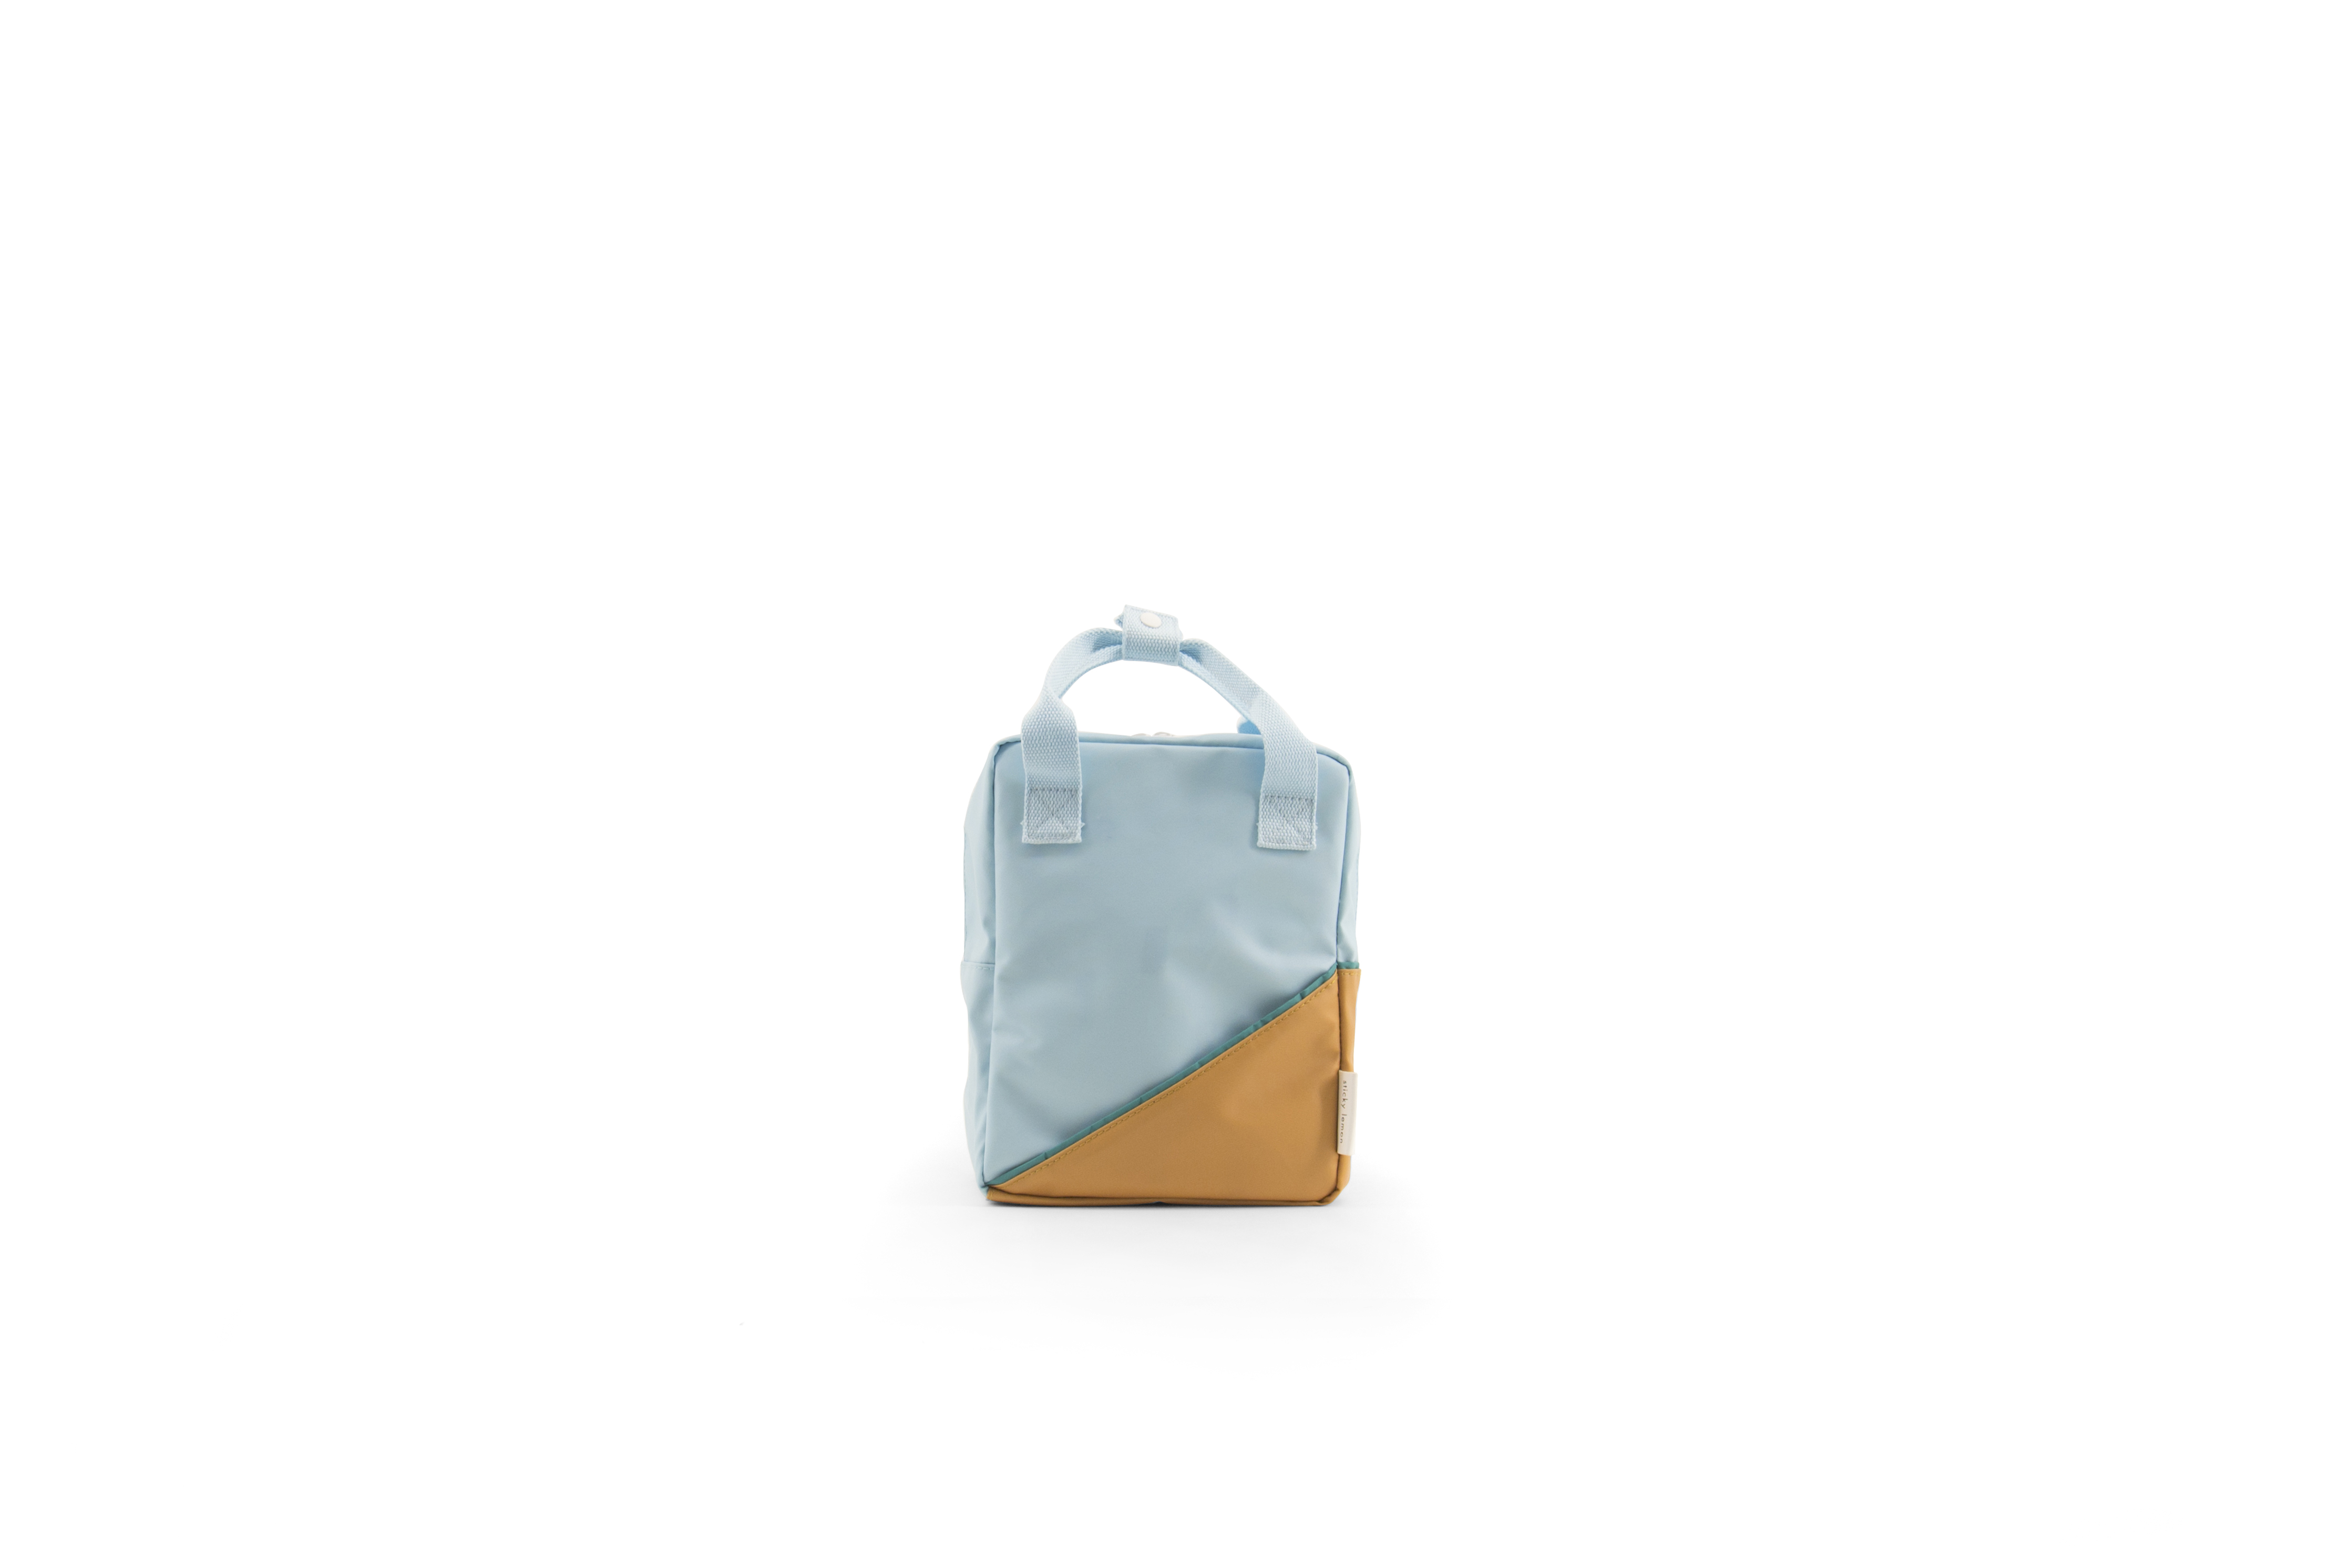 Sticky Lemon Blue - Backpack Diagonal Small - Light Blue - Accessories